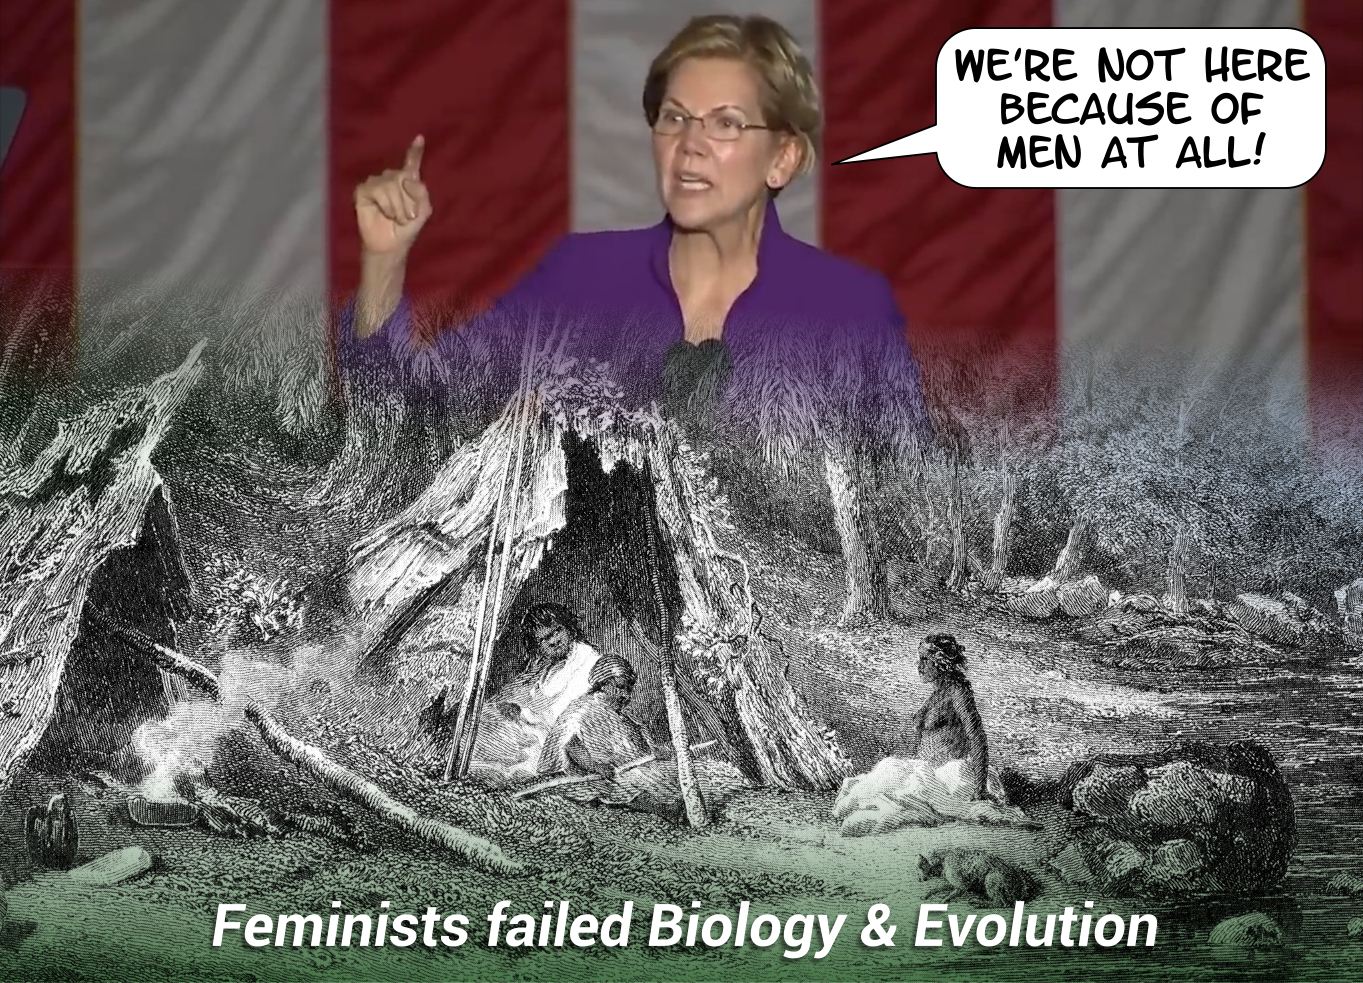 Feminists failed biology and evolution